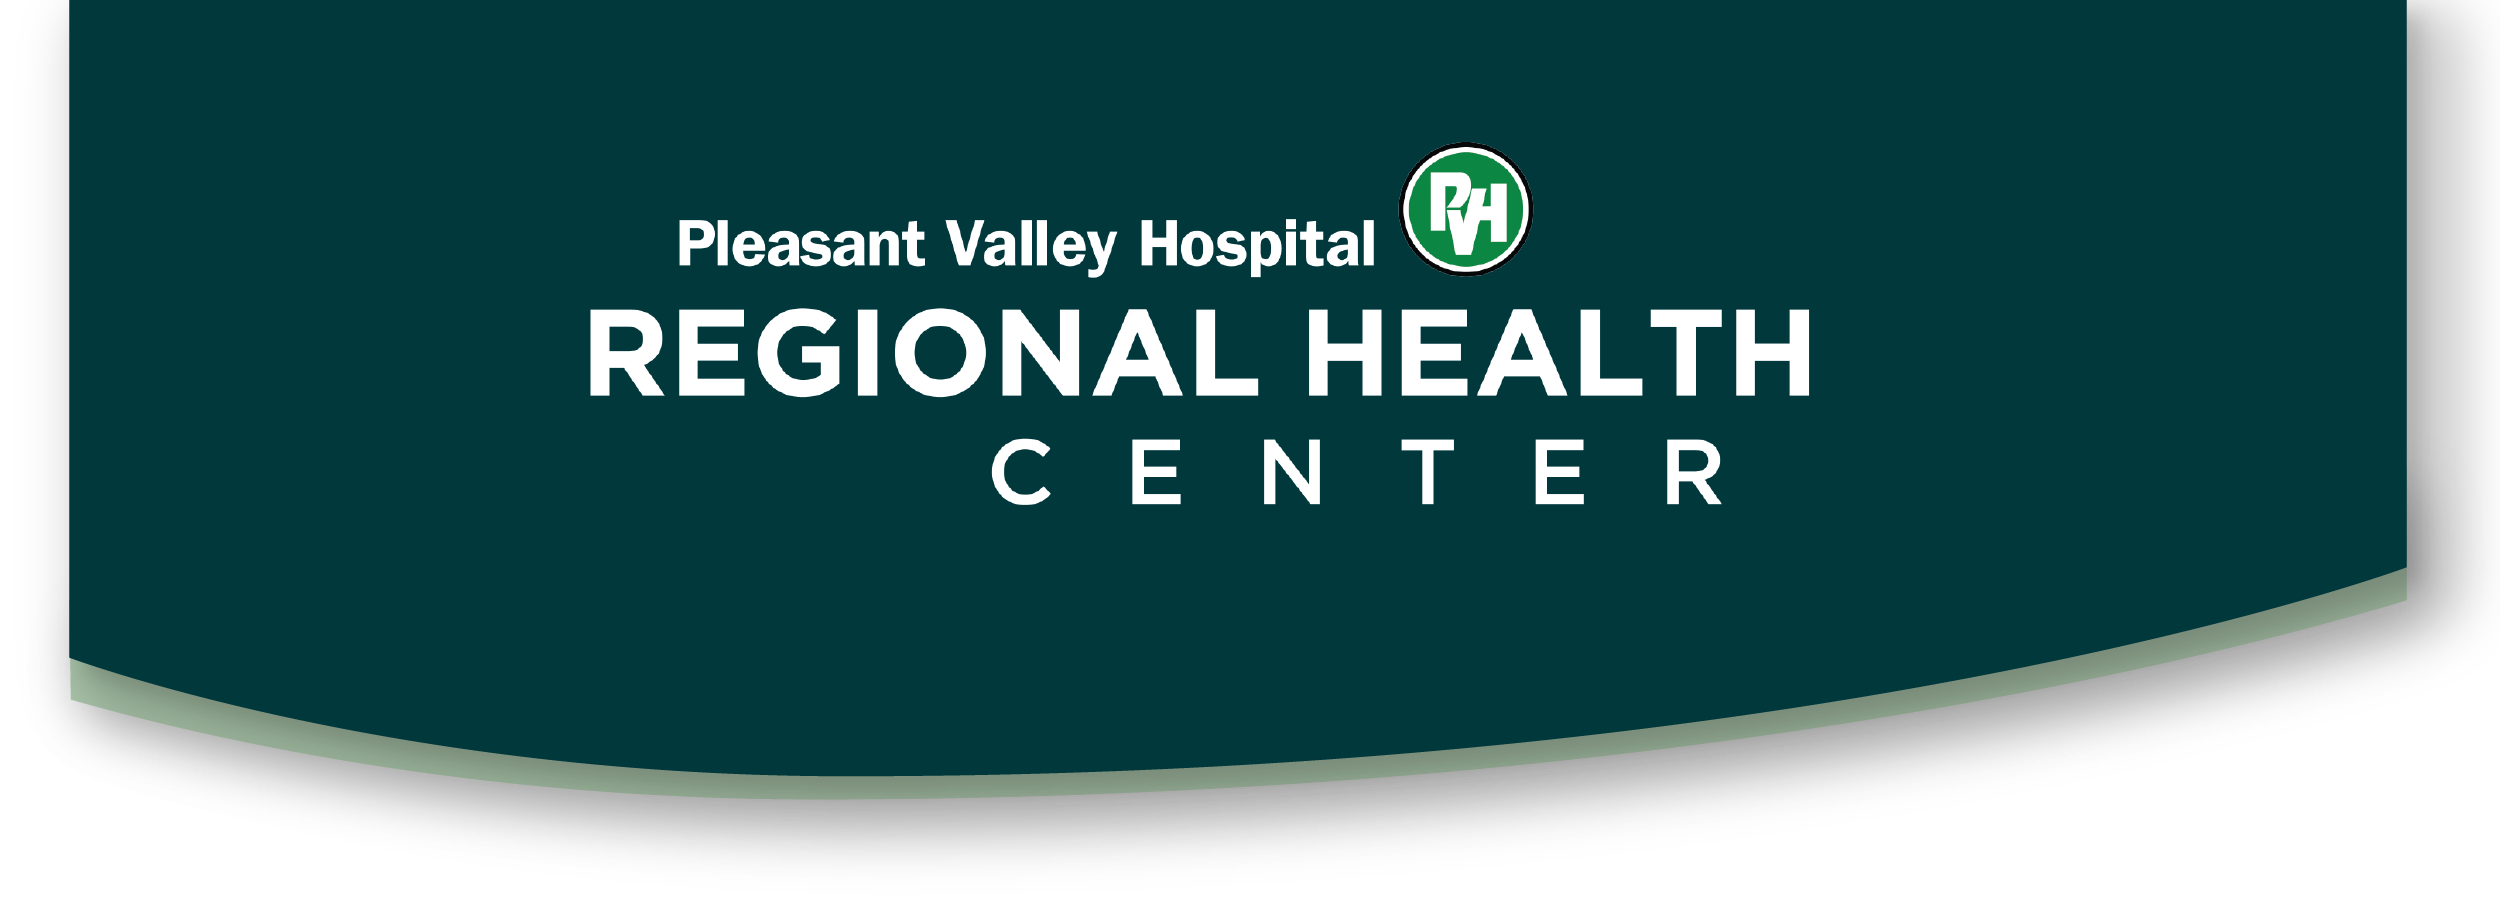 Pleasant Valley Hospital Regional Health Center